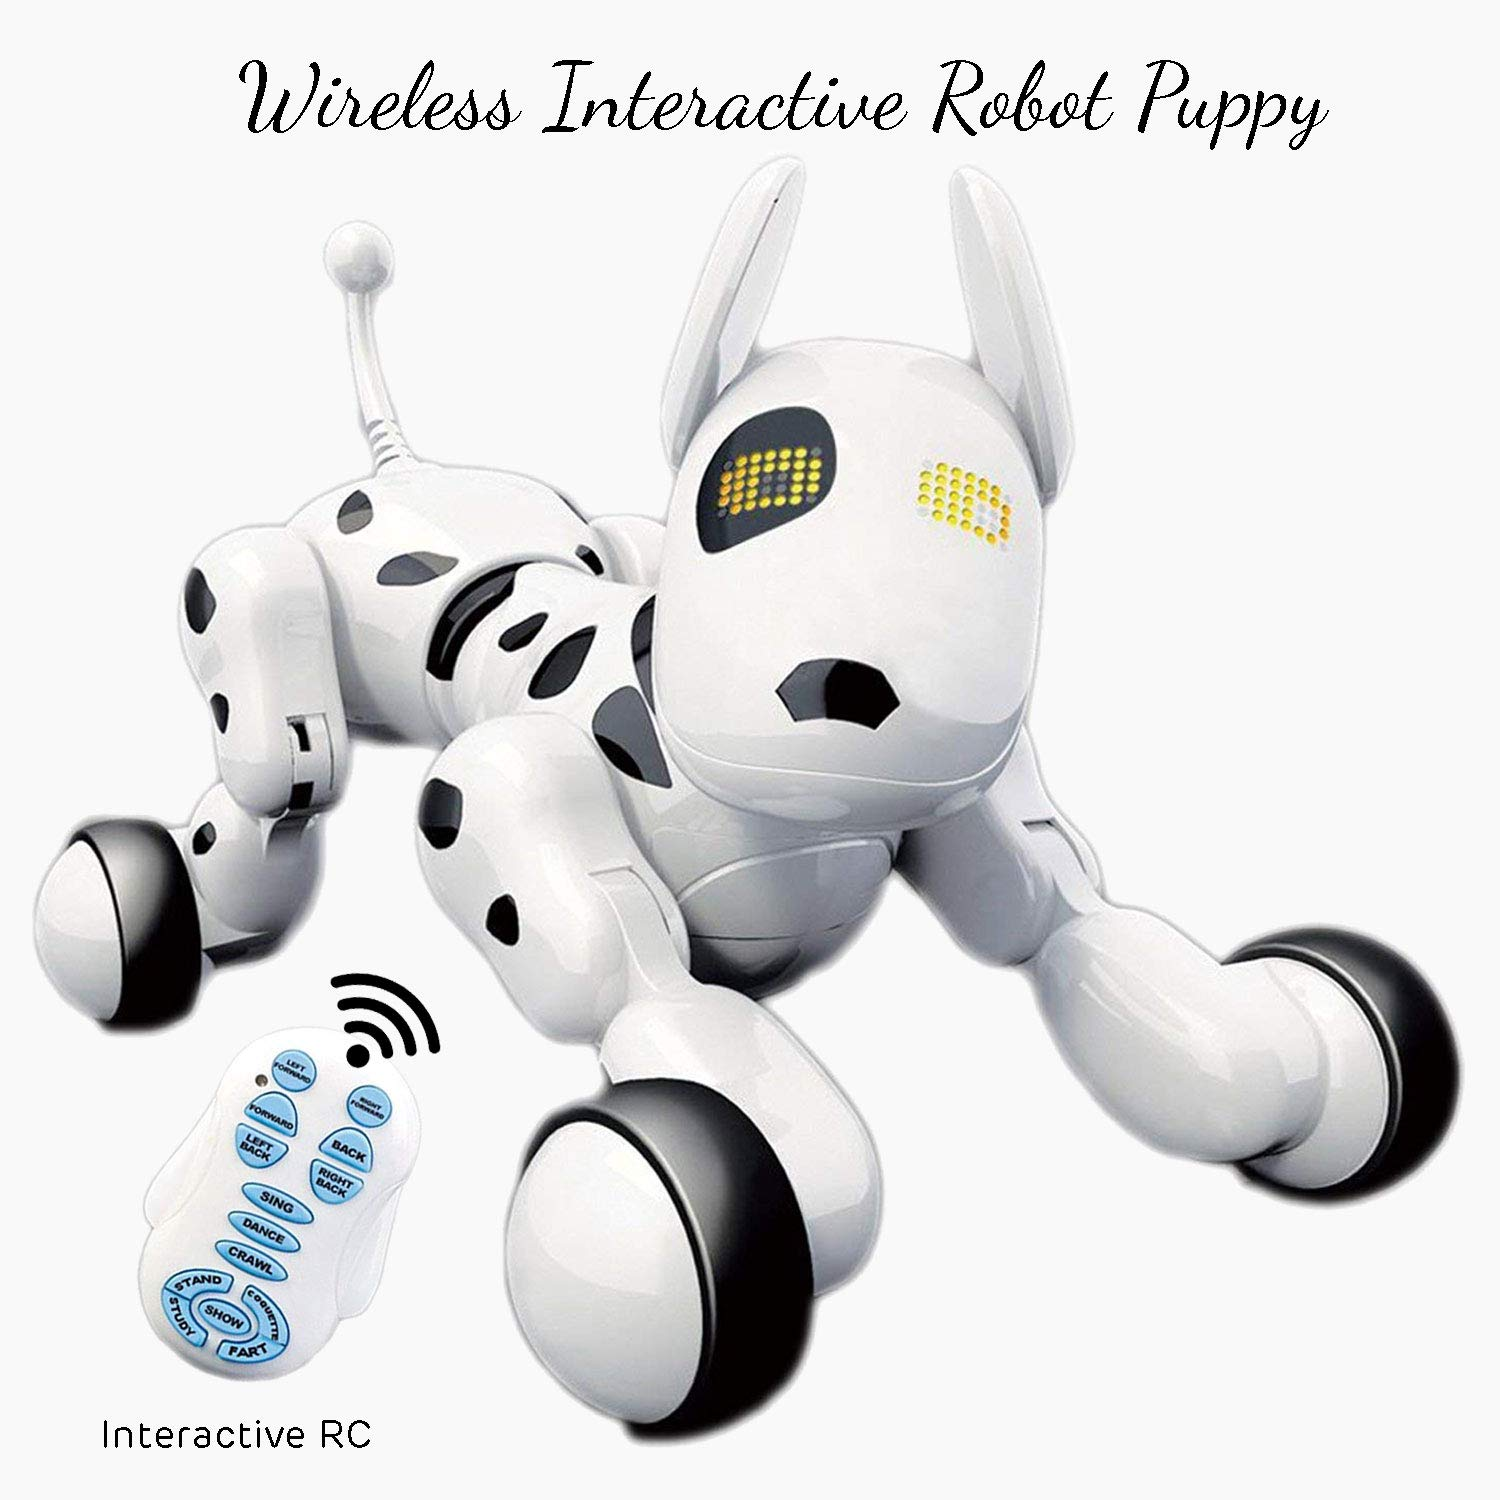 Dimple Interactive Robot Puppy With Wireless Remote Control RC Animal Dog Toy That Sings, Dances, Eye Mode, Speaks for Boys/Girls, Perfect Gift for Kids. by Dimple (Image #1)